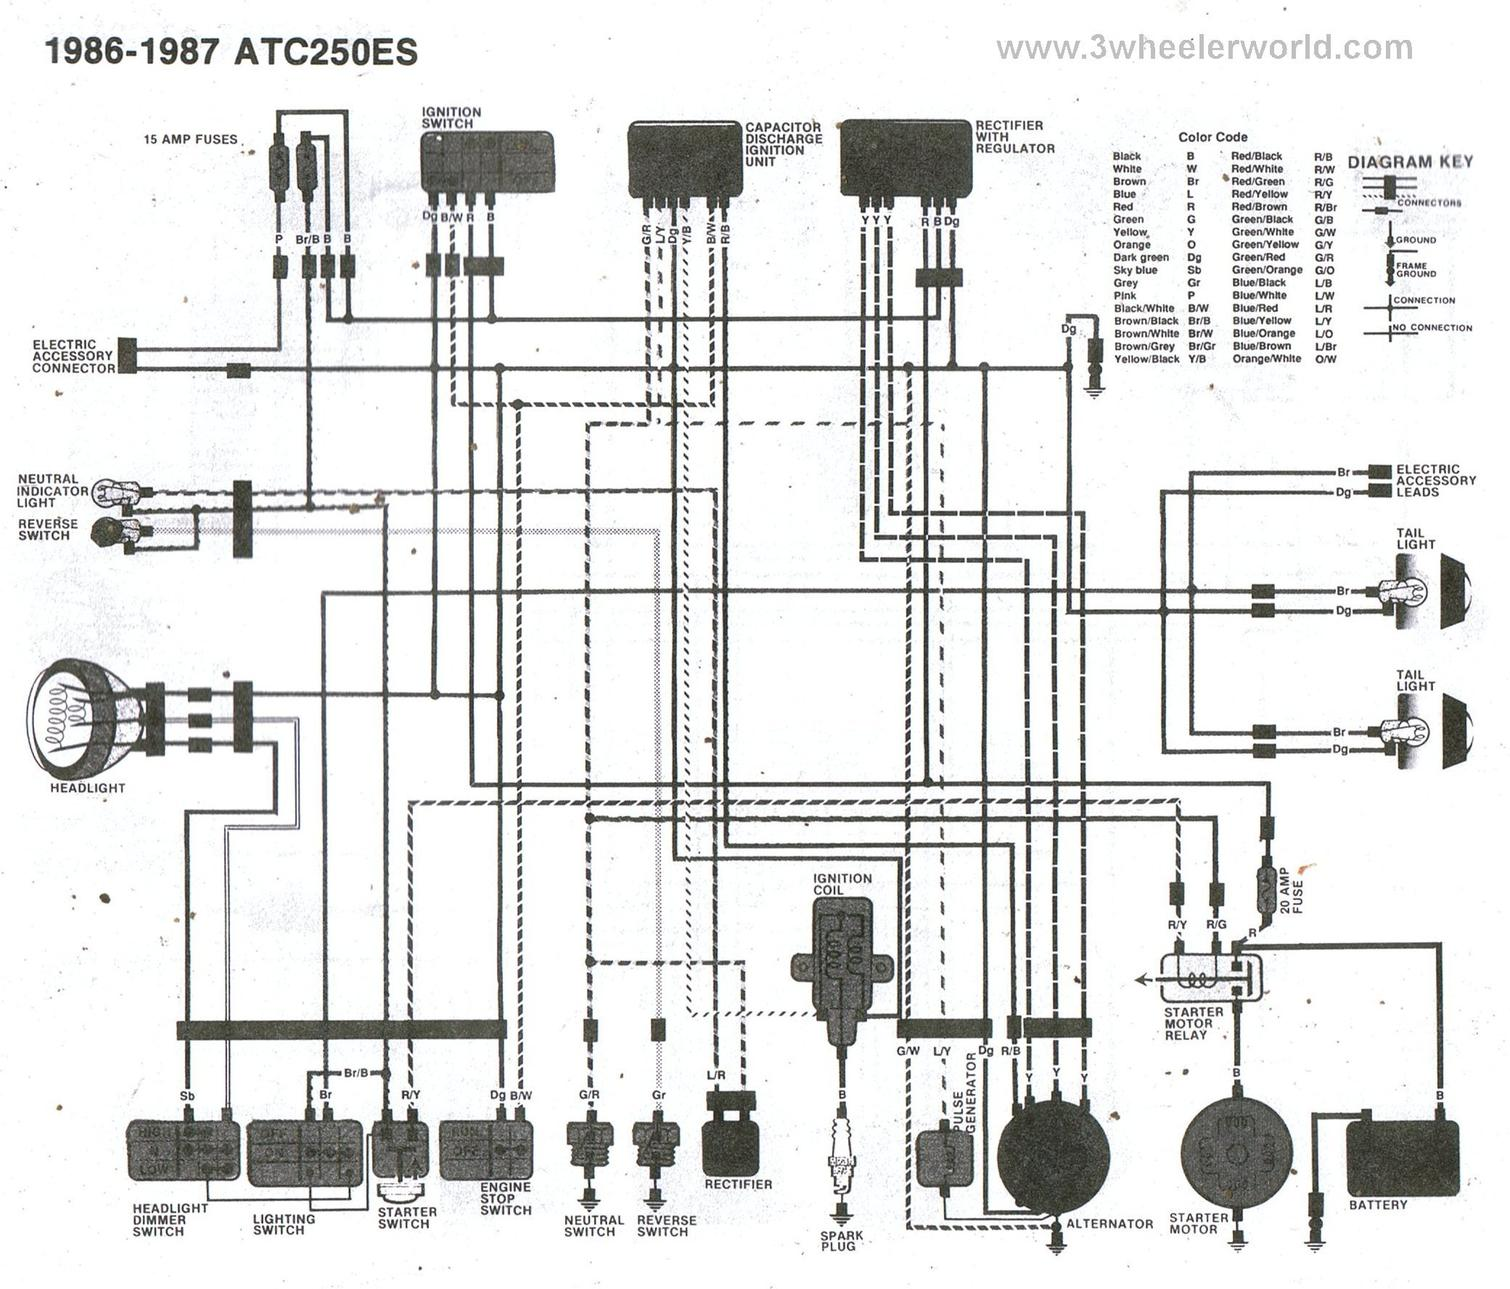 201 ATC250ES Big Red on Honda Atc 250r Wiring Diagram